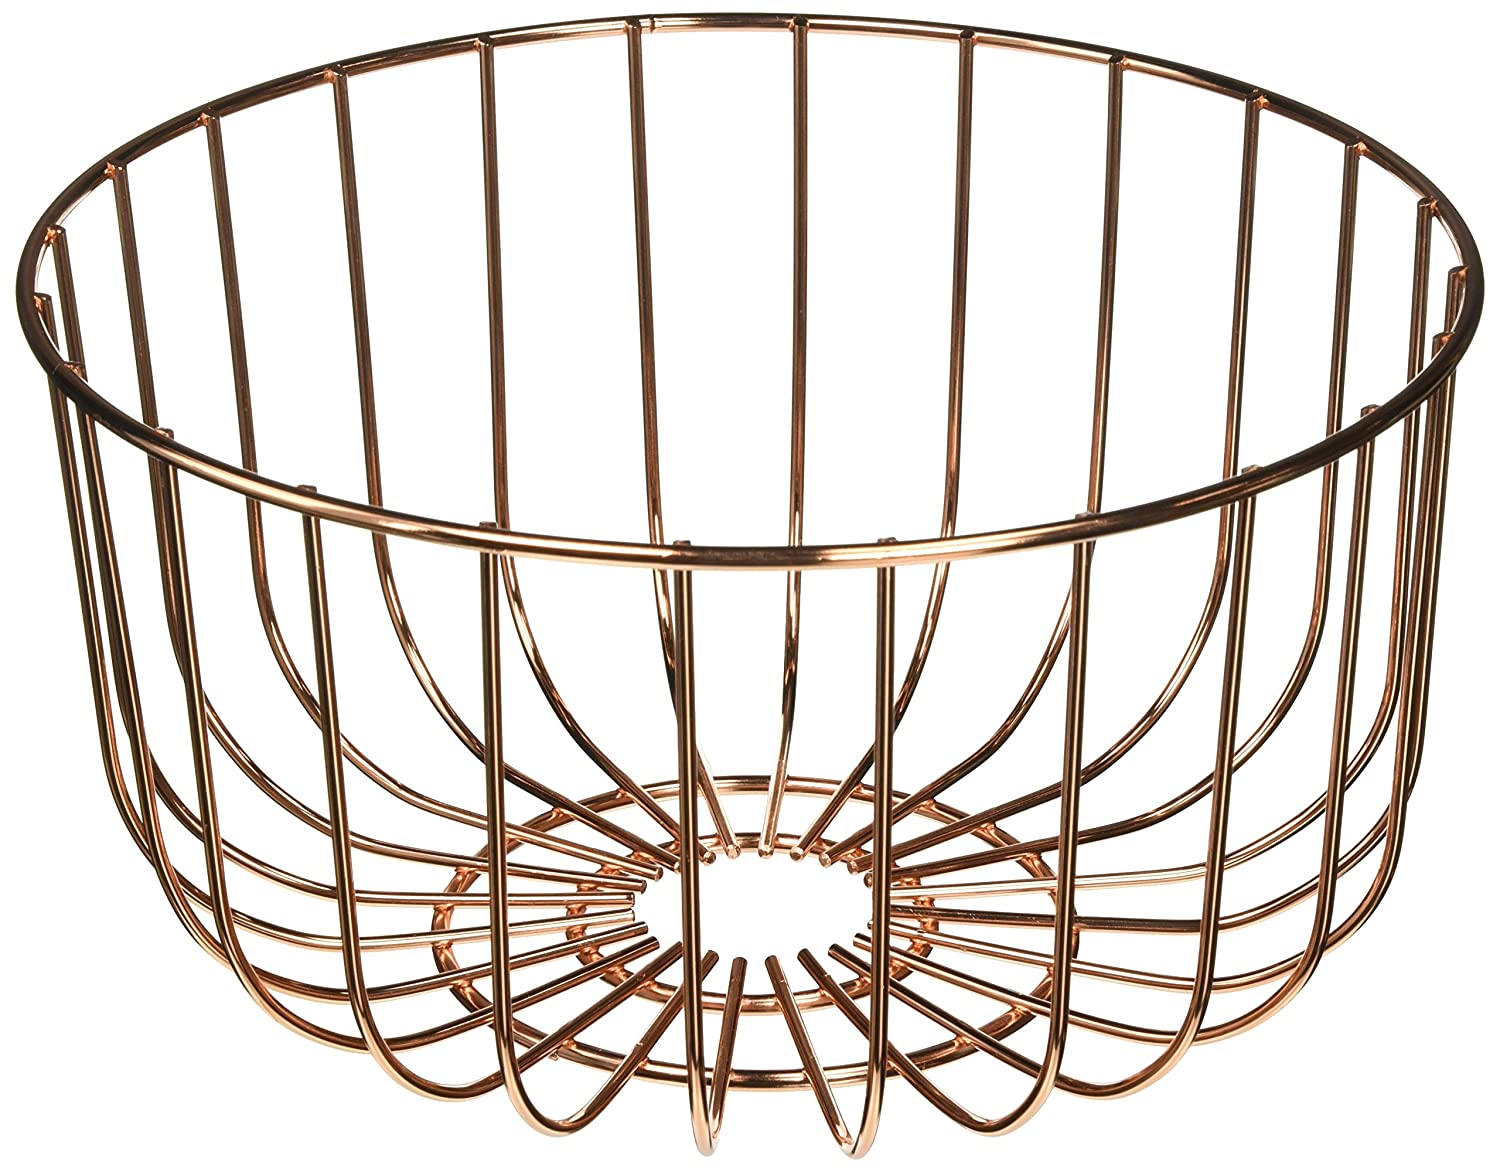 Torre & Tagus 910628A Symmetry Fruit Bowl, Short, Rose Gold Torre & Taugus